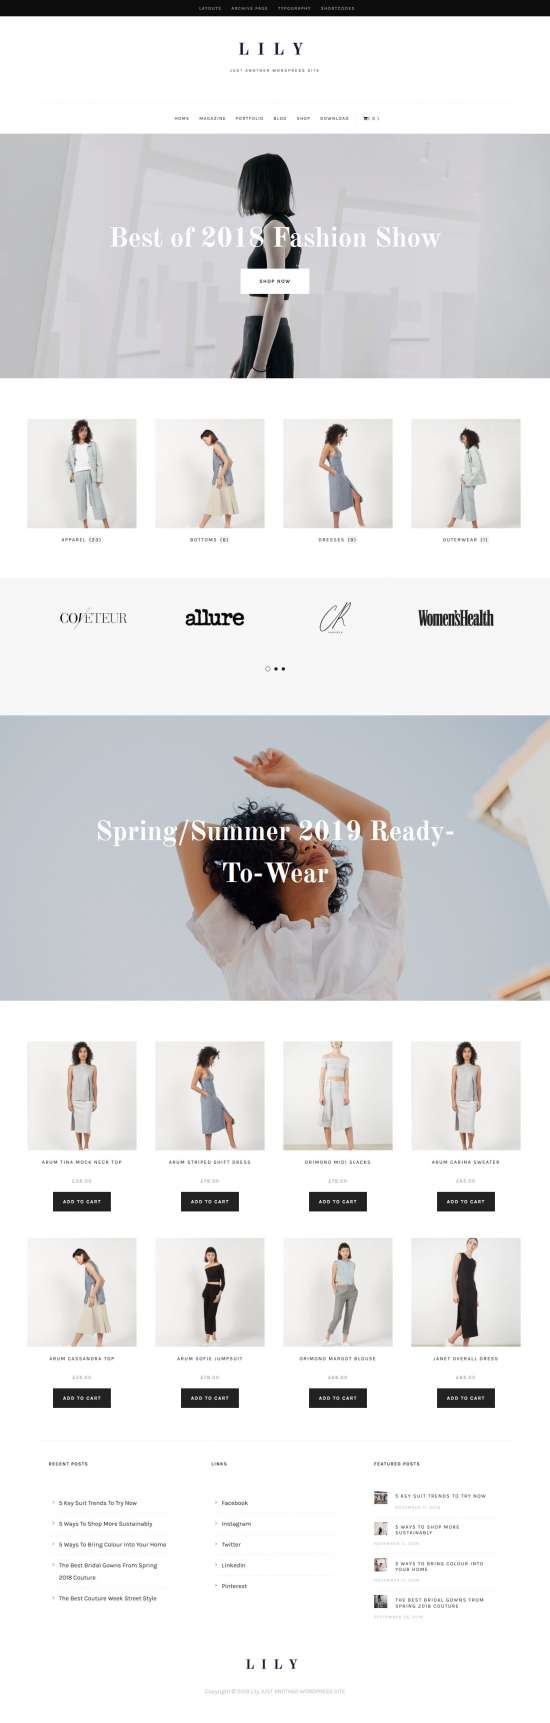 lily wordpress theme 01 550x1723 - Lily WordPress Theme